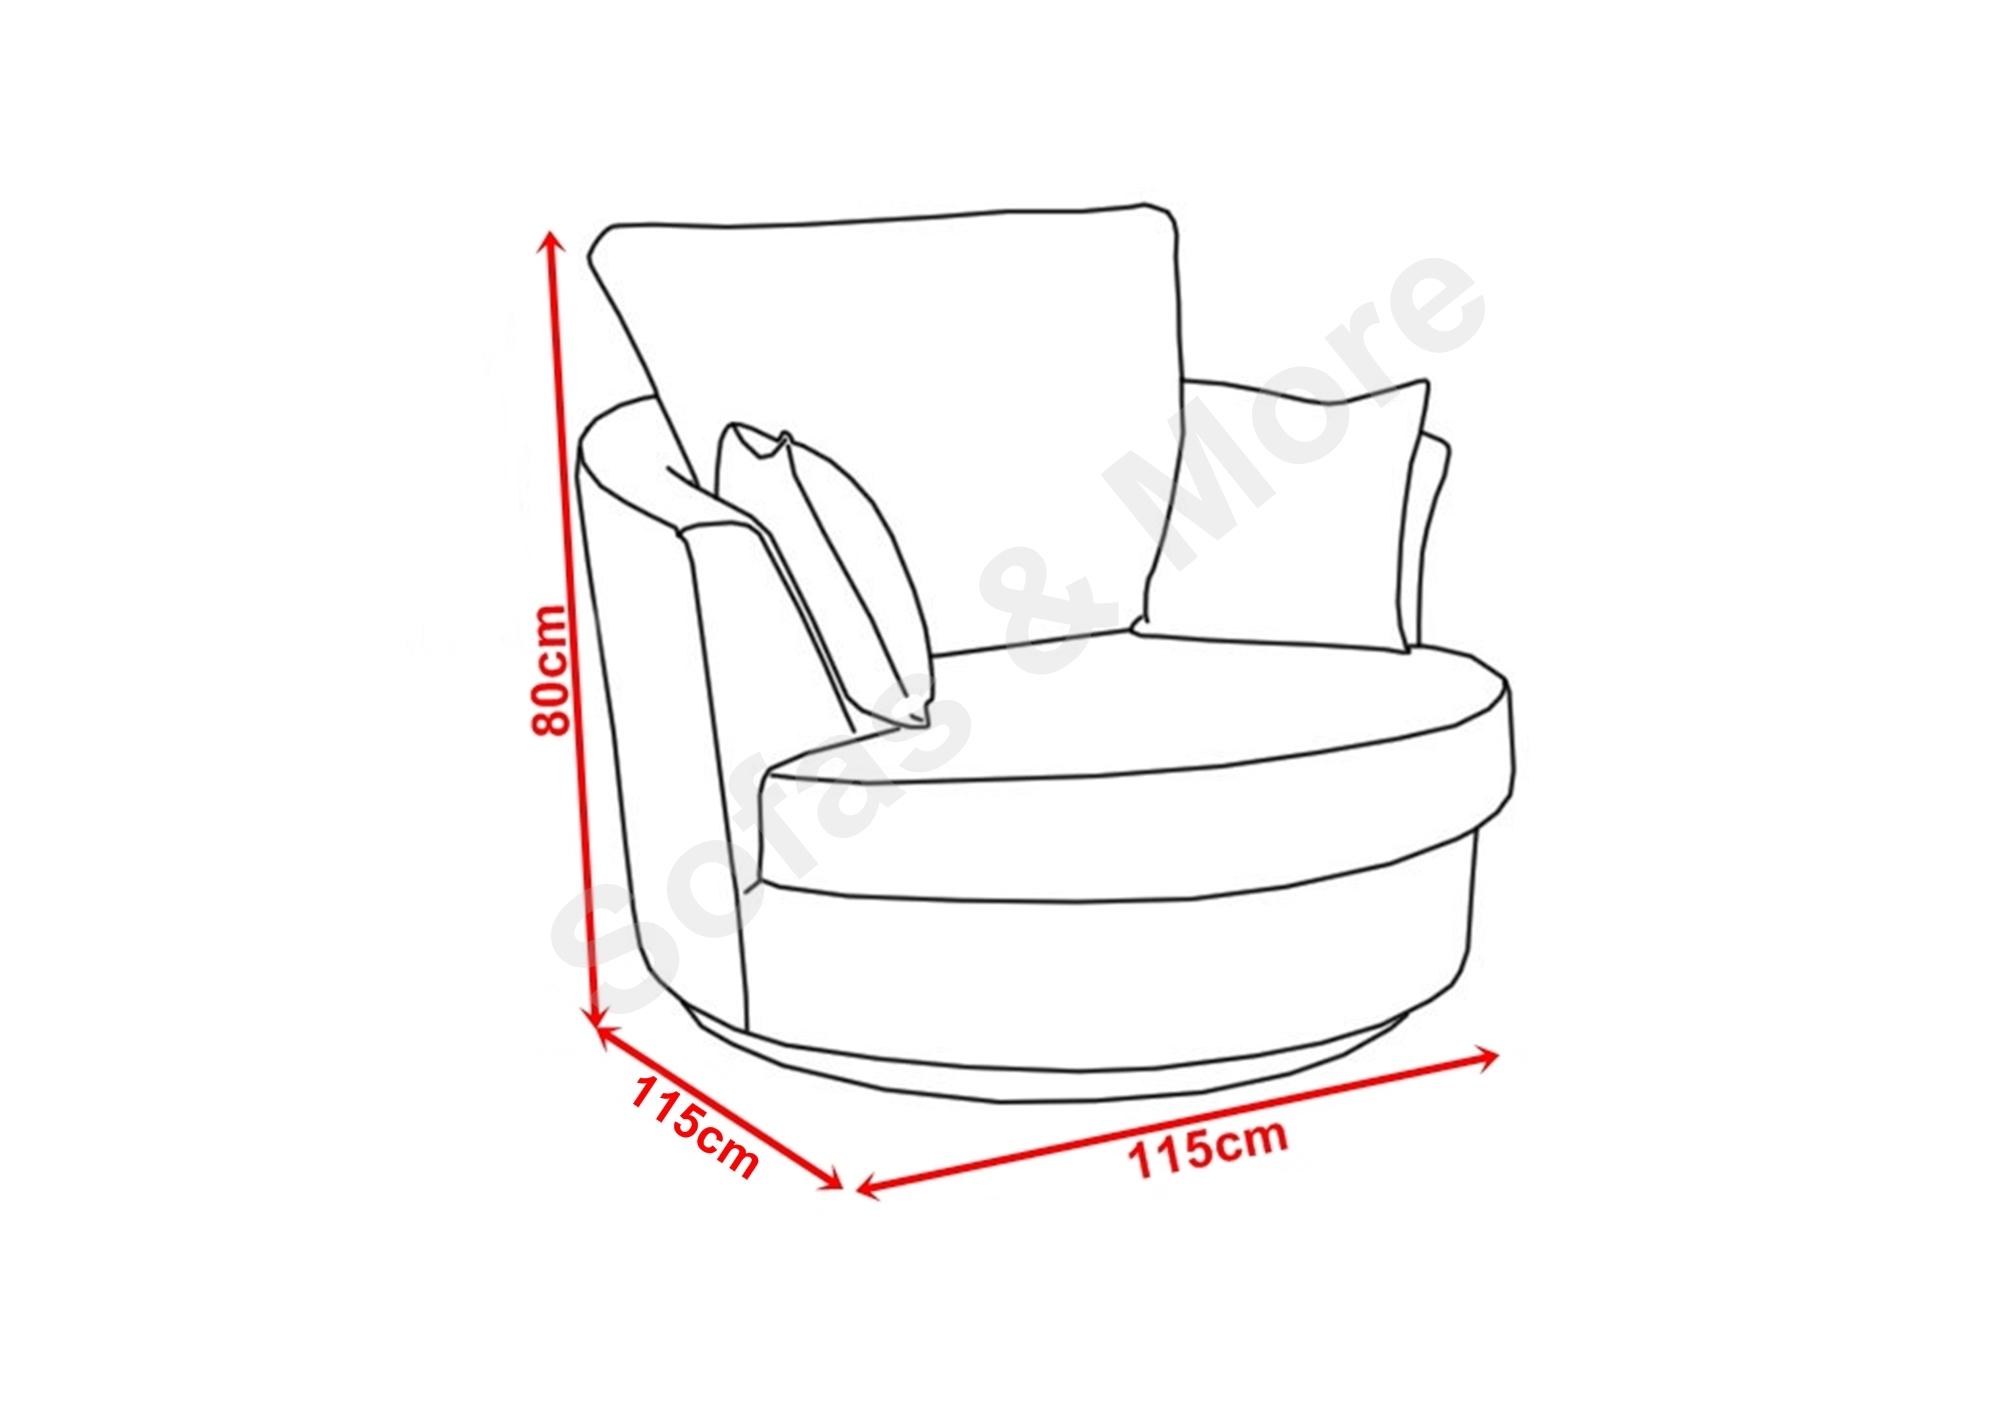 removable dining chair seat covers ghost chairs cheap large swivel round cuddle chenille fabric grey black snuggle love sofa   ebay